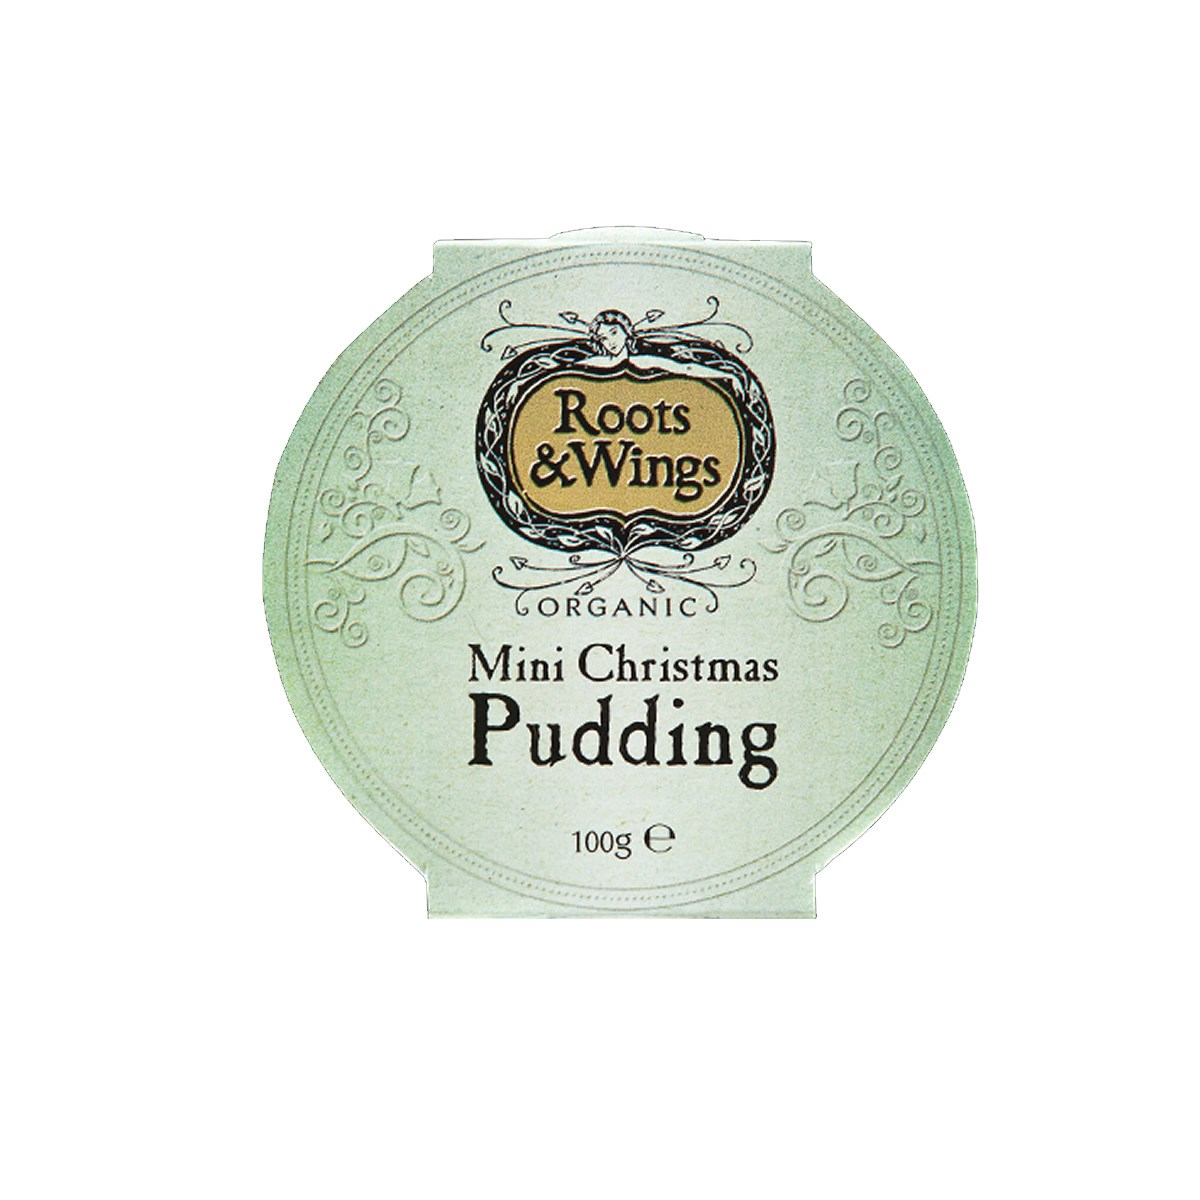 Roots & Wings Christmas Pudding